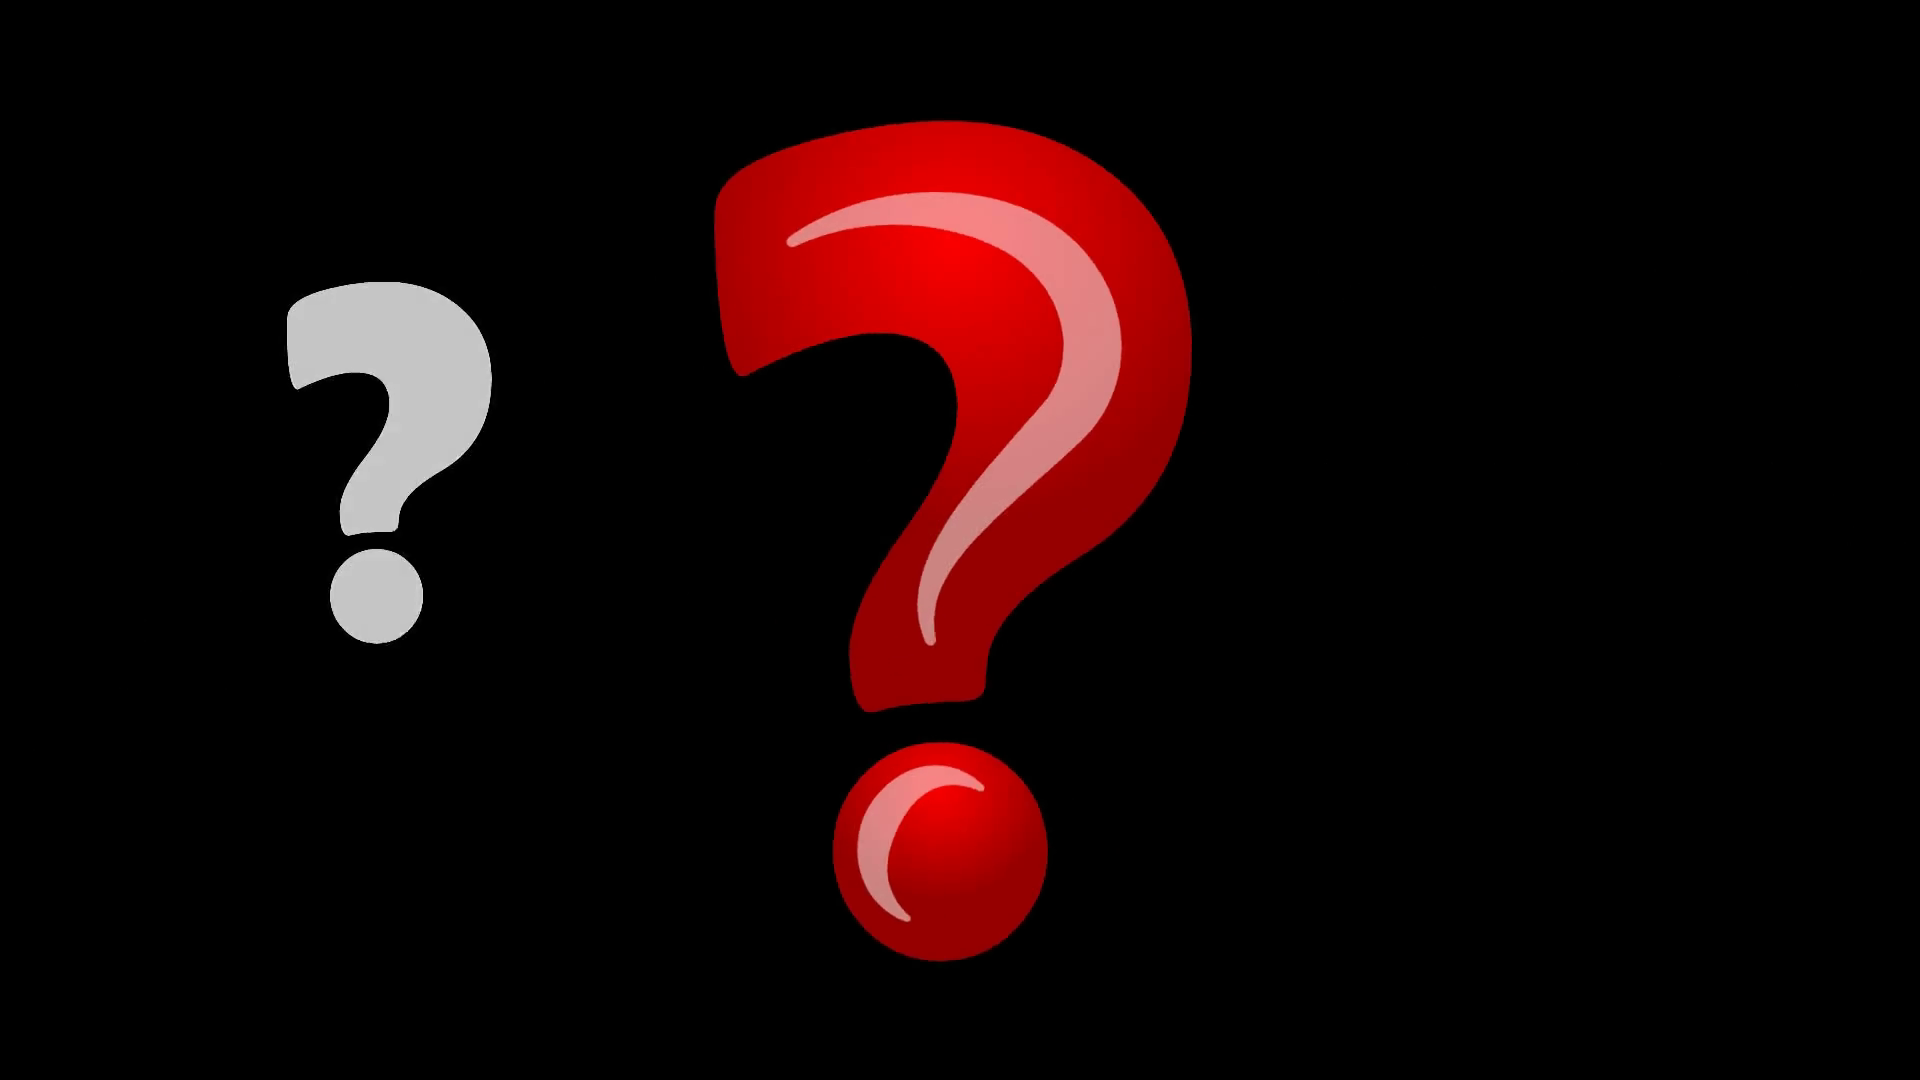 1920x1080 Question Mark Animation, Quiz, Background. Motion Background